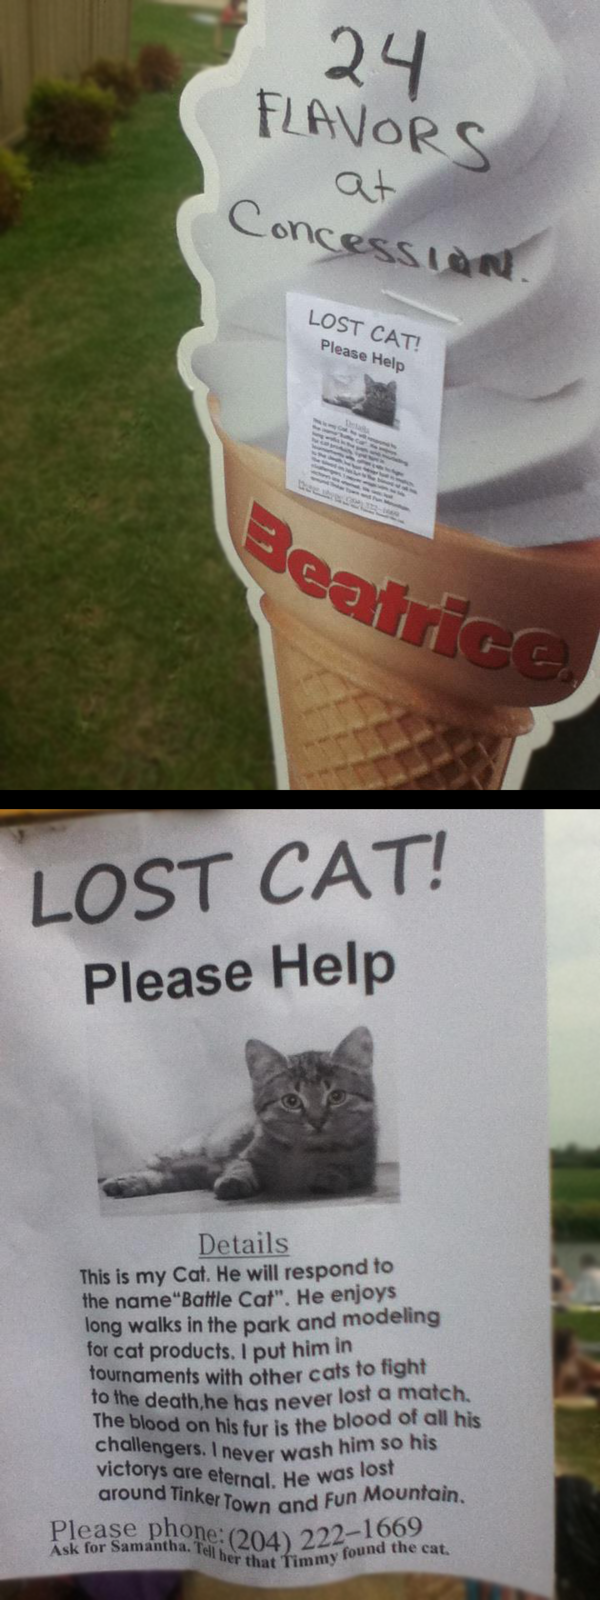 Battle Cat missing